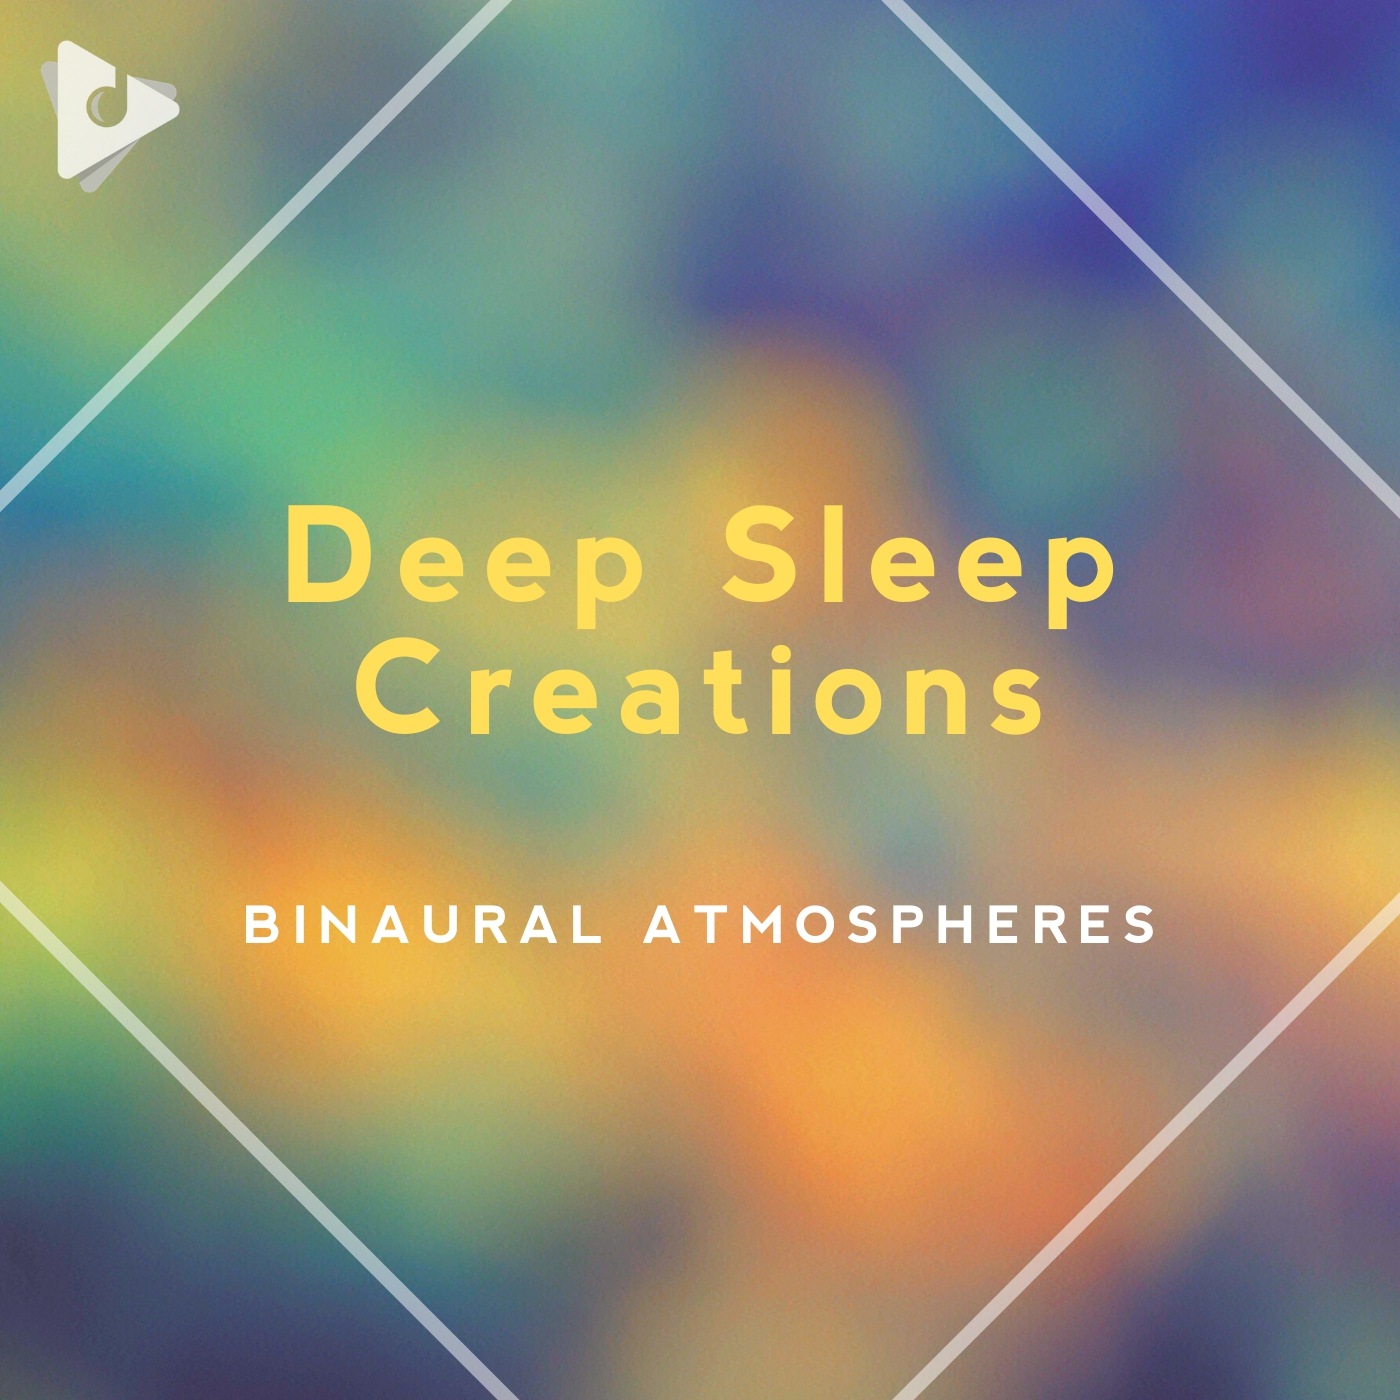 Deep Sleep Creations